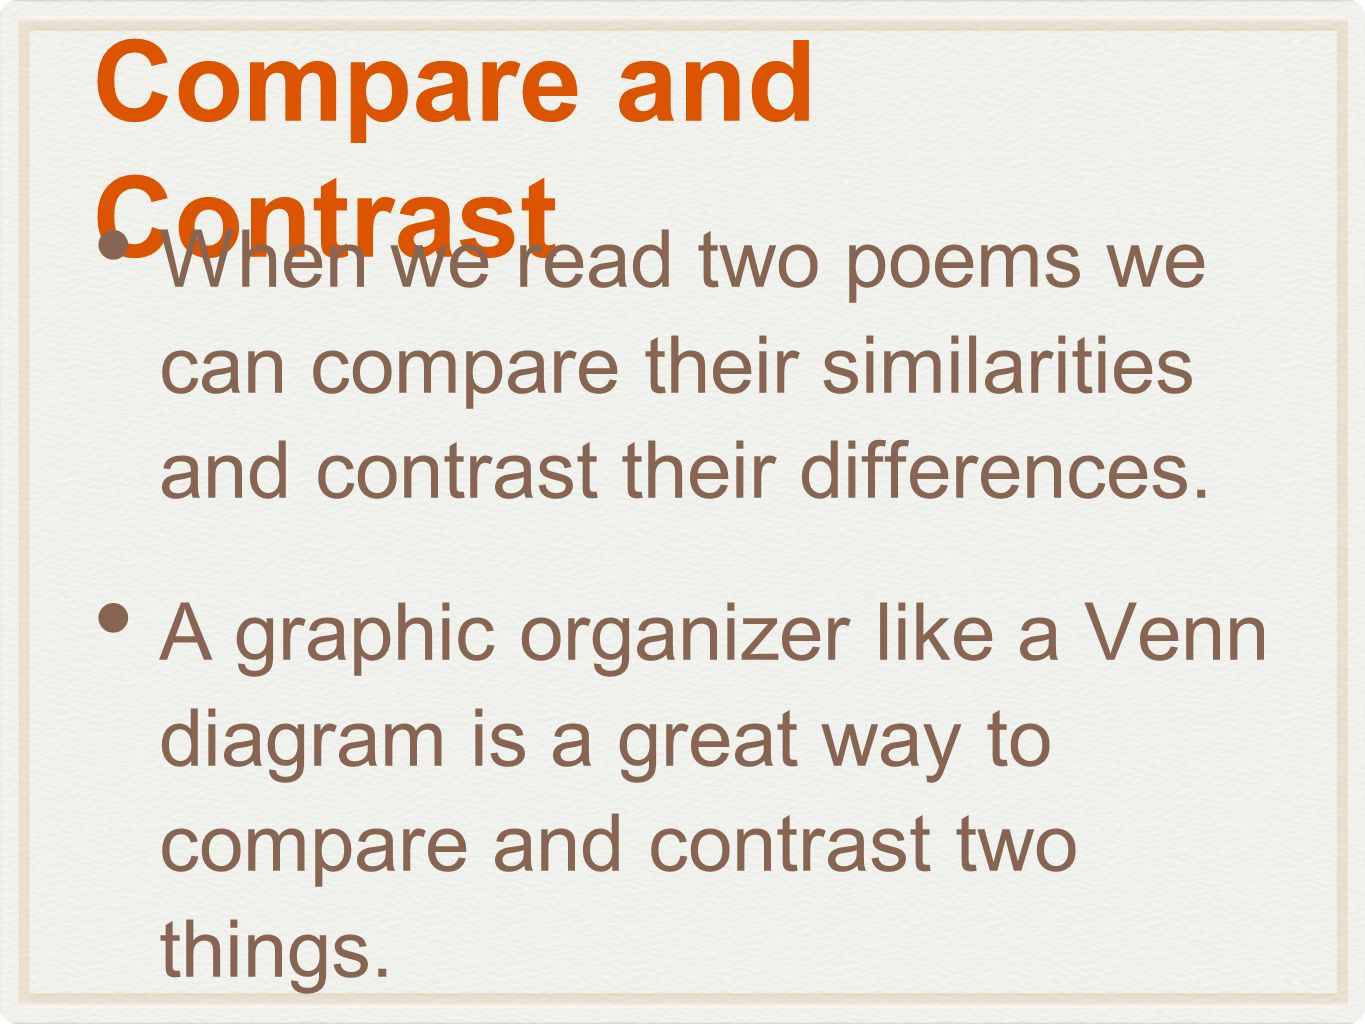 poetry essay compare contrast williams Composing poetry is an artistic expression subsequently it's a way of conveying everything that needs to be conveyed and folding importance in expressions through poetry words are illuminated to form a picture, express feeling and share a thought in so few words putting down on.